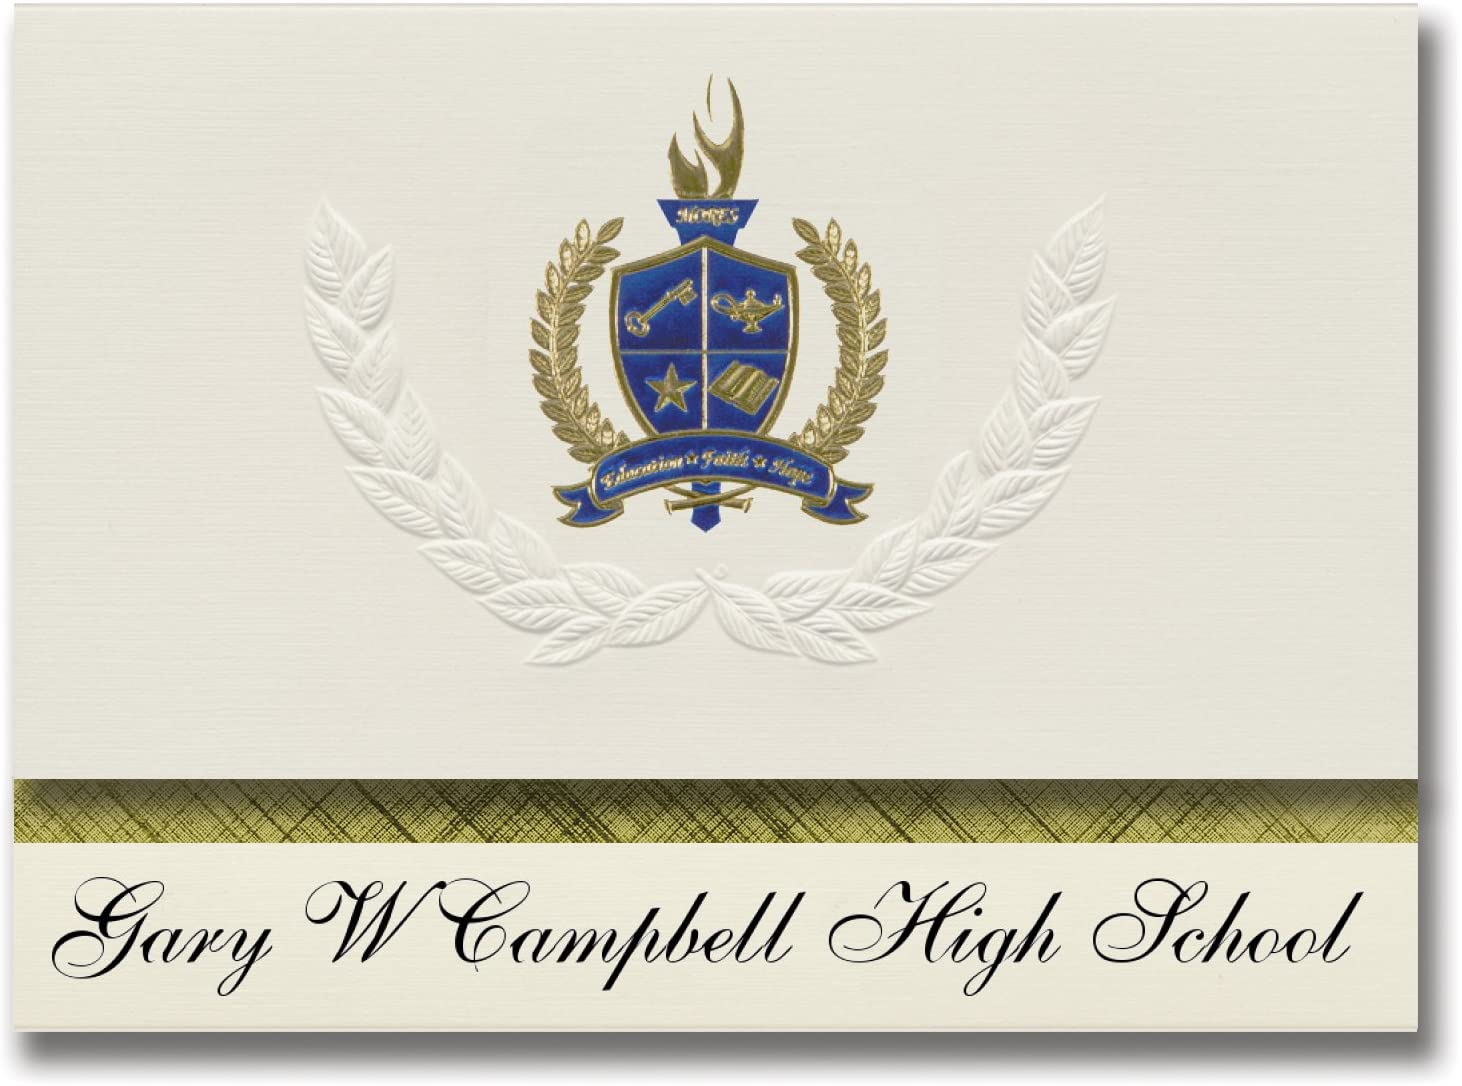 Signature Announcements Gary W Campbell High School (Kaufman, TX) Graduation Announcements, Presidential style, Basic package of 25 with Gold & Blue Metallic Foil seal